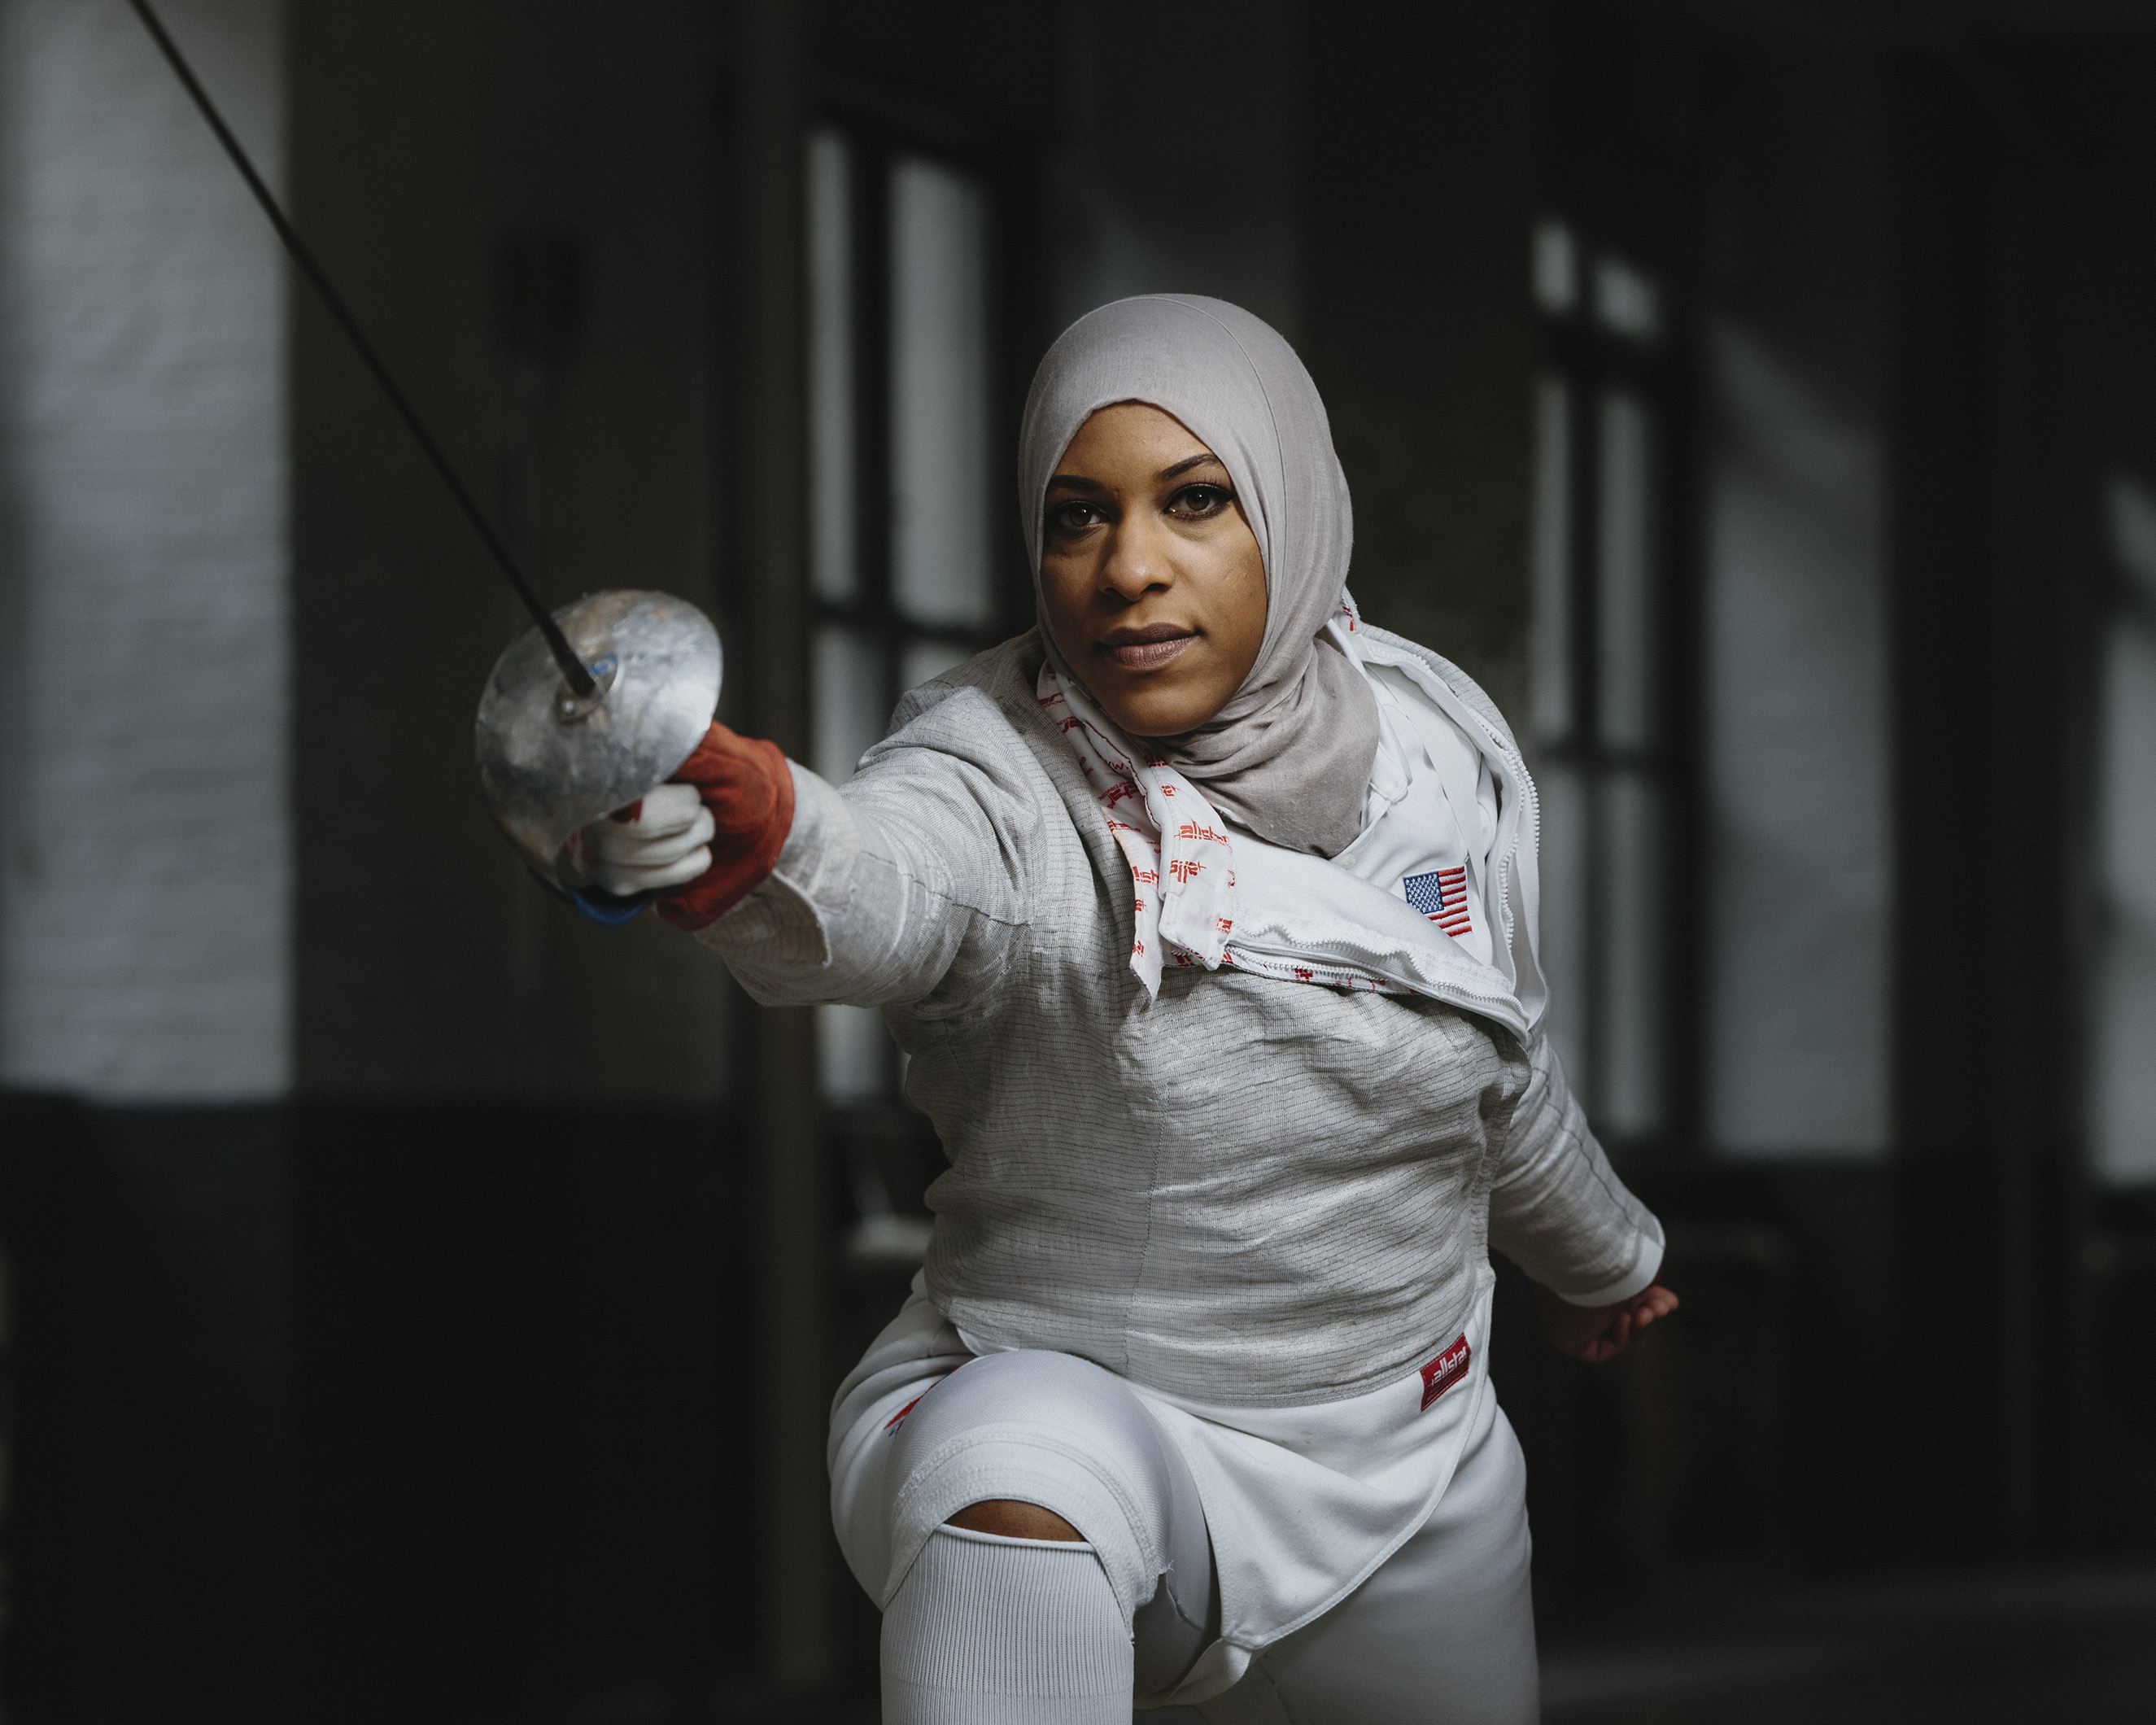 Olympic fencer Ibtihaj Muhammad photographed at theFencers Club in New York City on Tues., Feb. 9, 2016.From  A New Edge for Team USA.  March 14, 2016 issue.